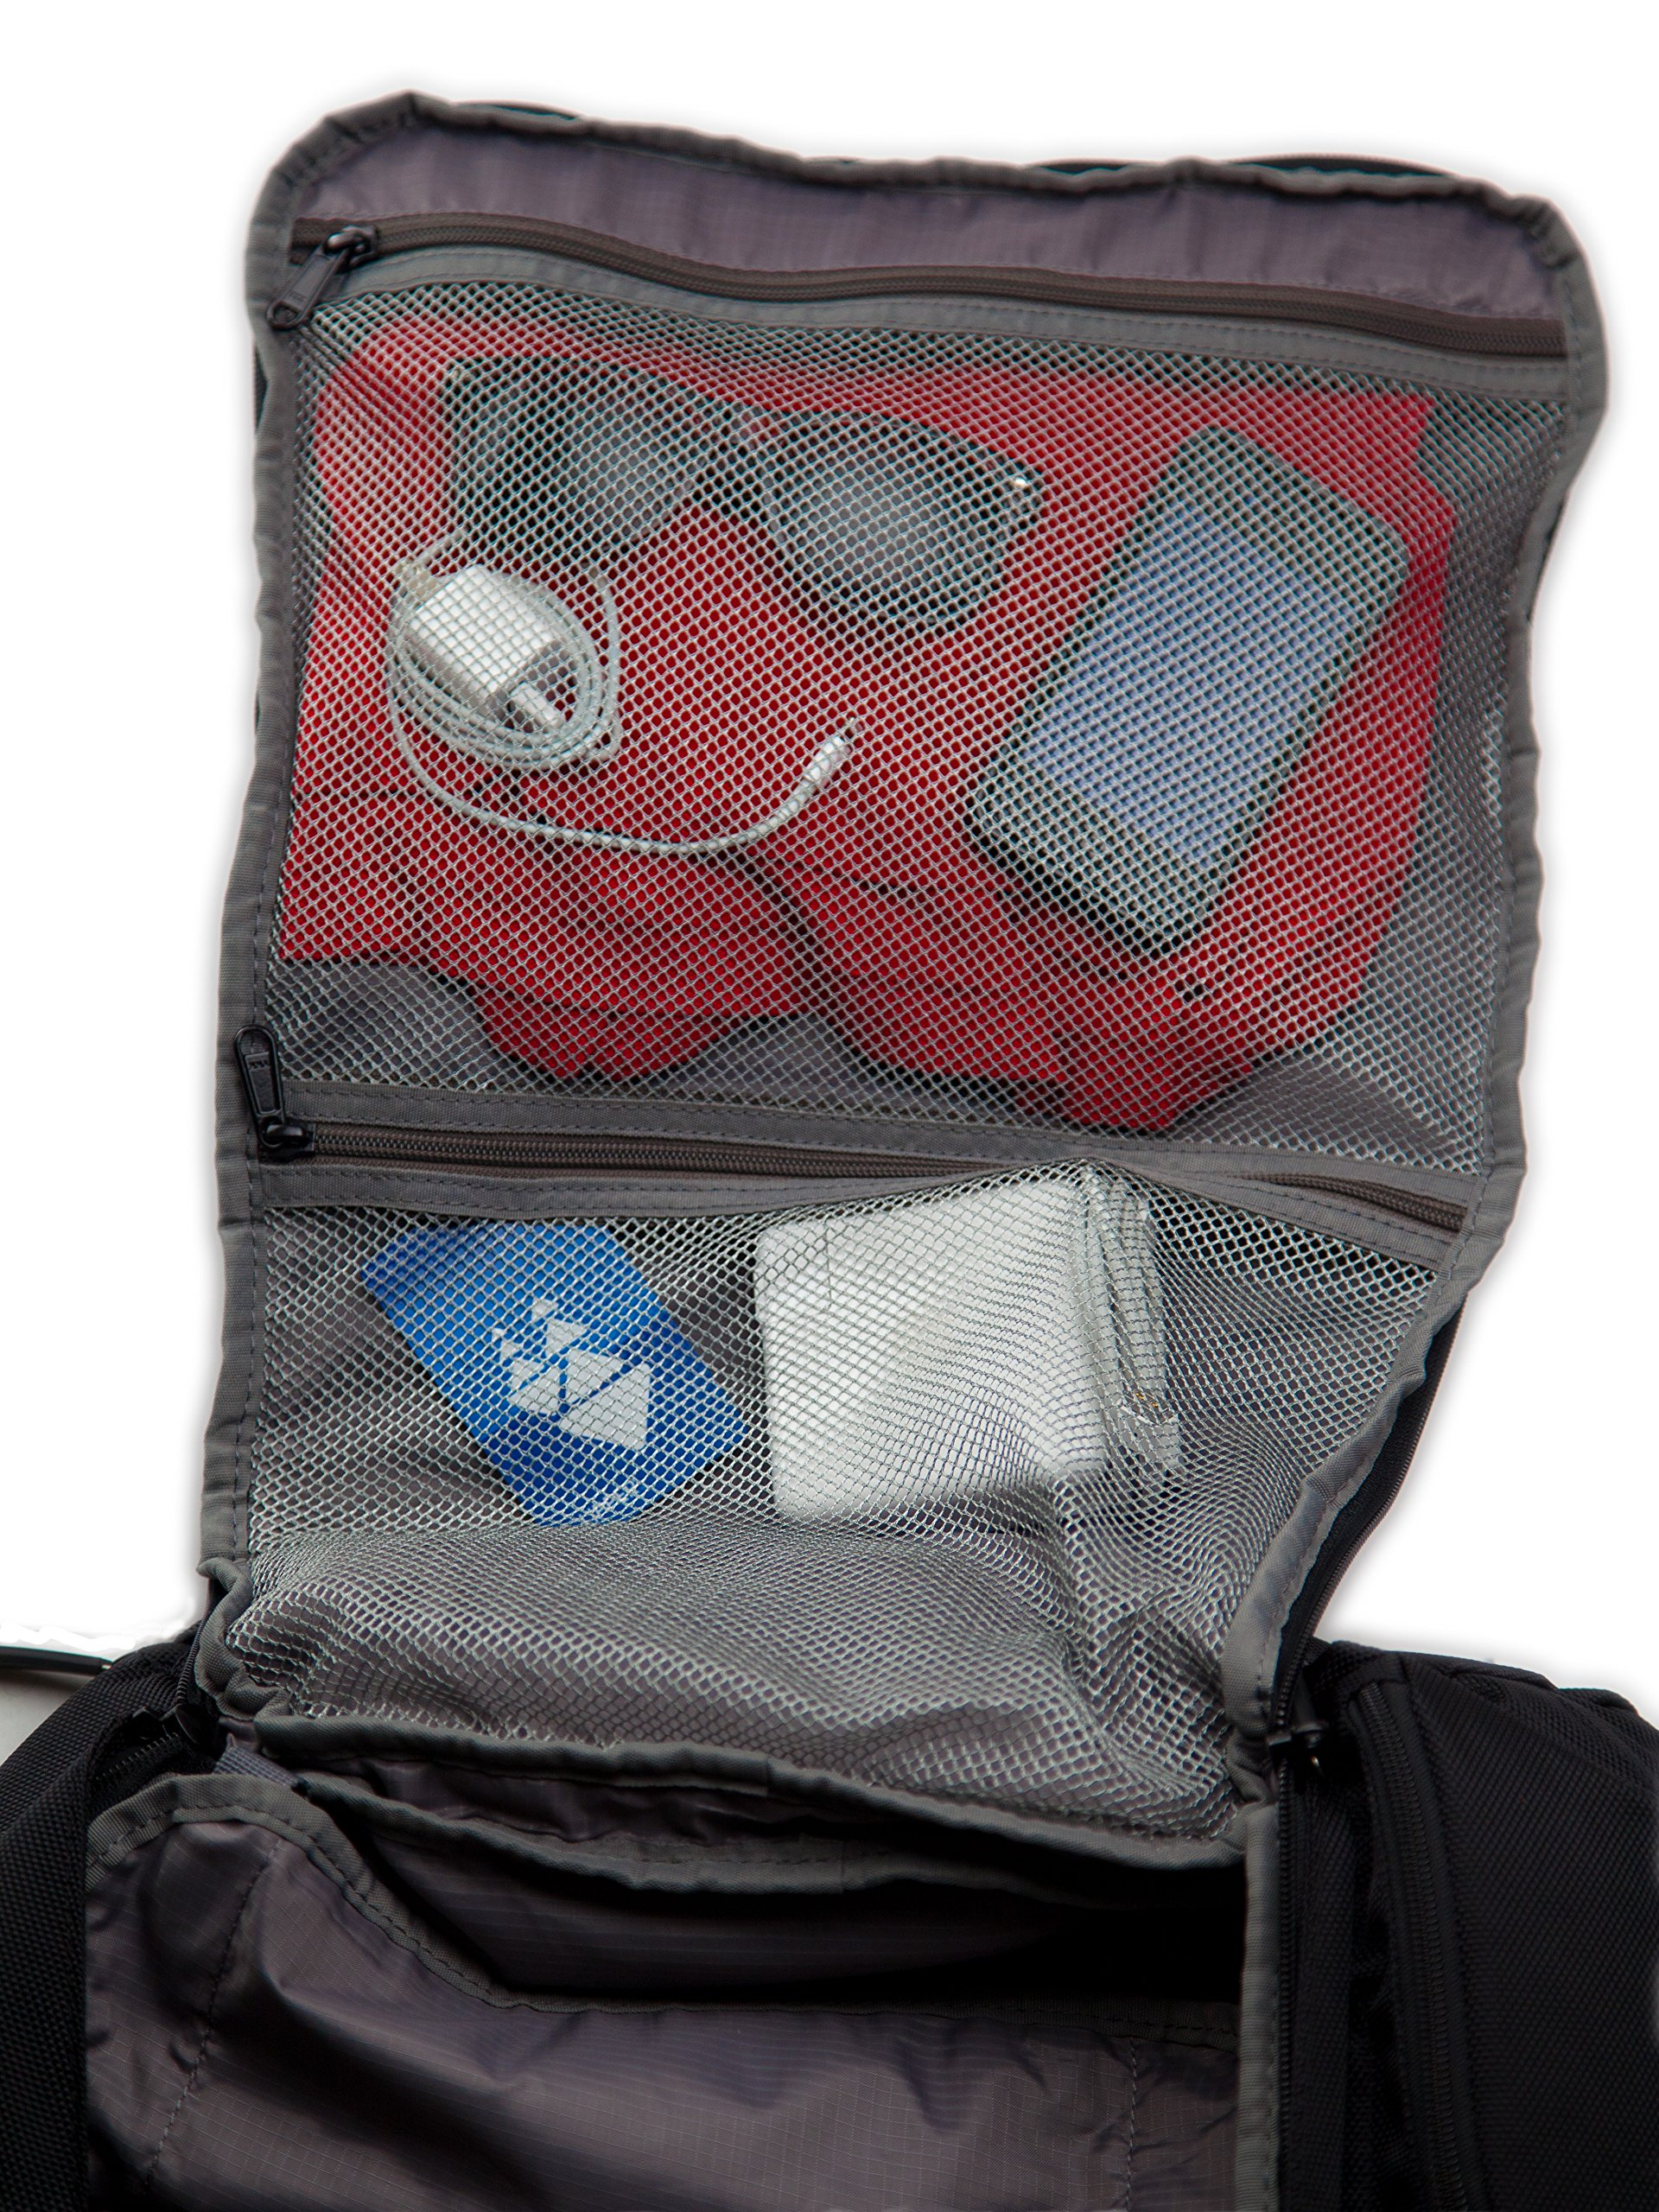 Tortuga Travel Backpack - 44L Maximum-Sized Carry On Travel Backpack by Tortuga (Image #4)